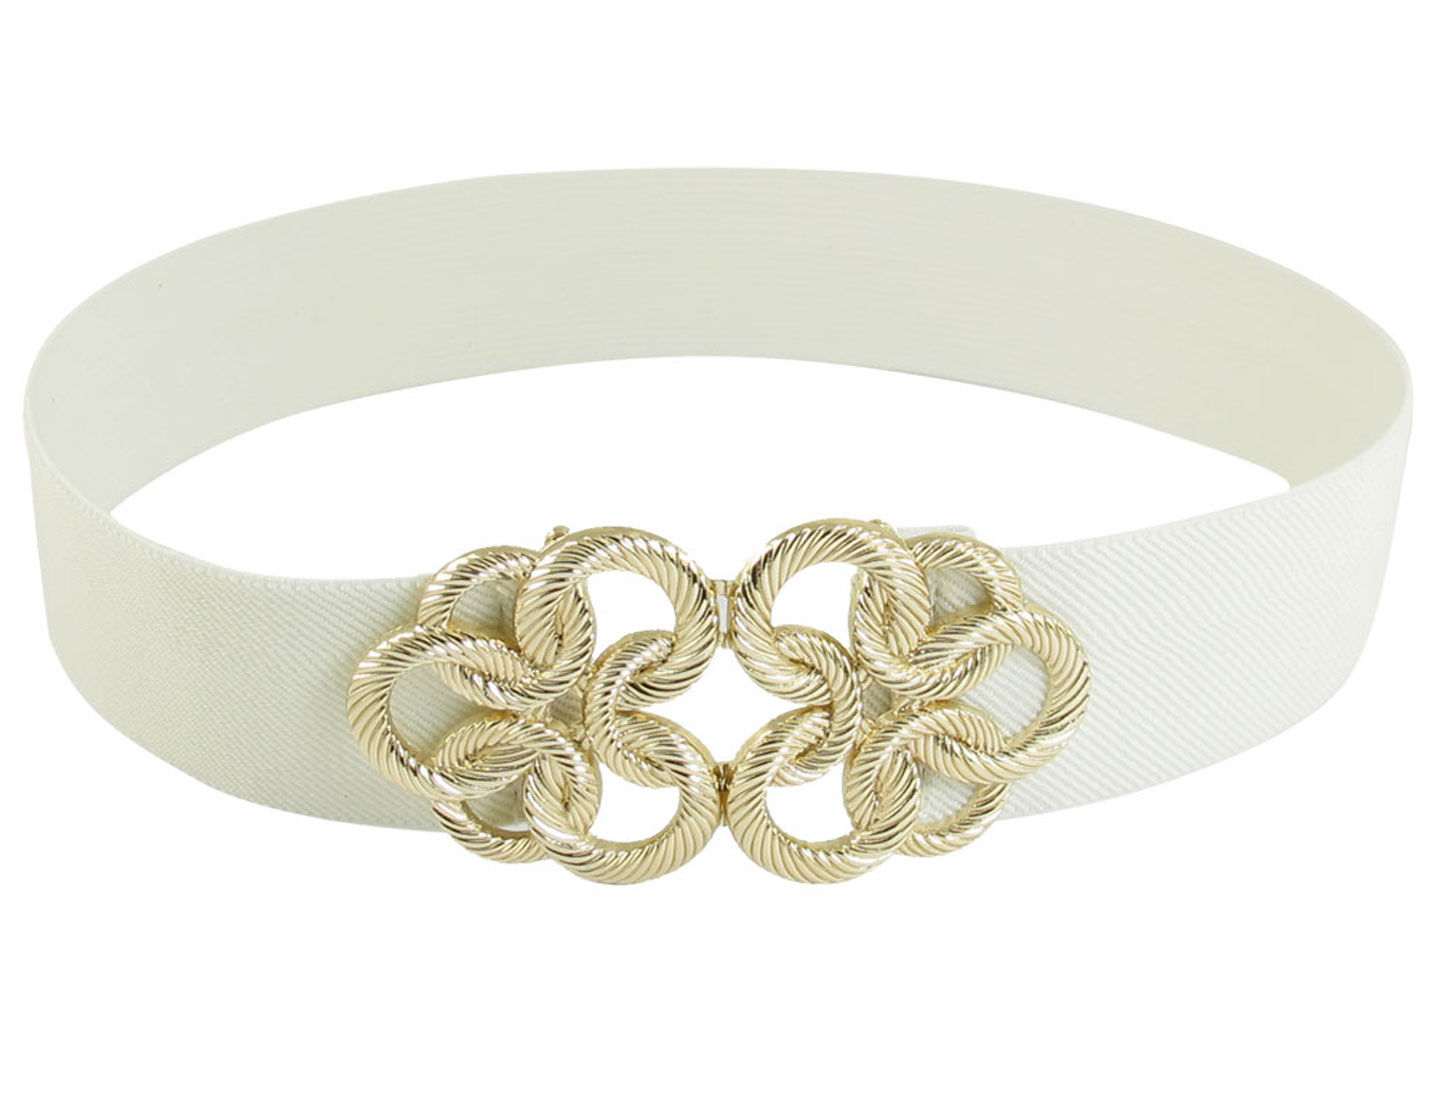 Lady Gold Tone Metal Interlock Buckle White Elastic Waist Cinch Belt Band